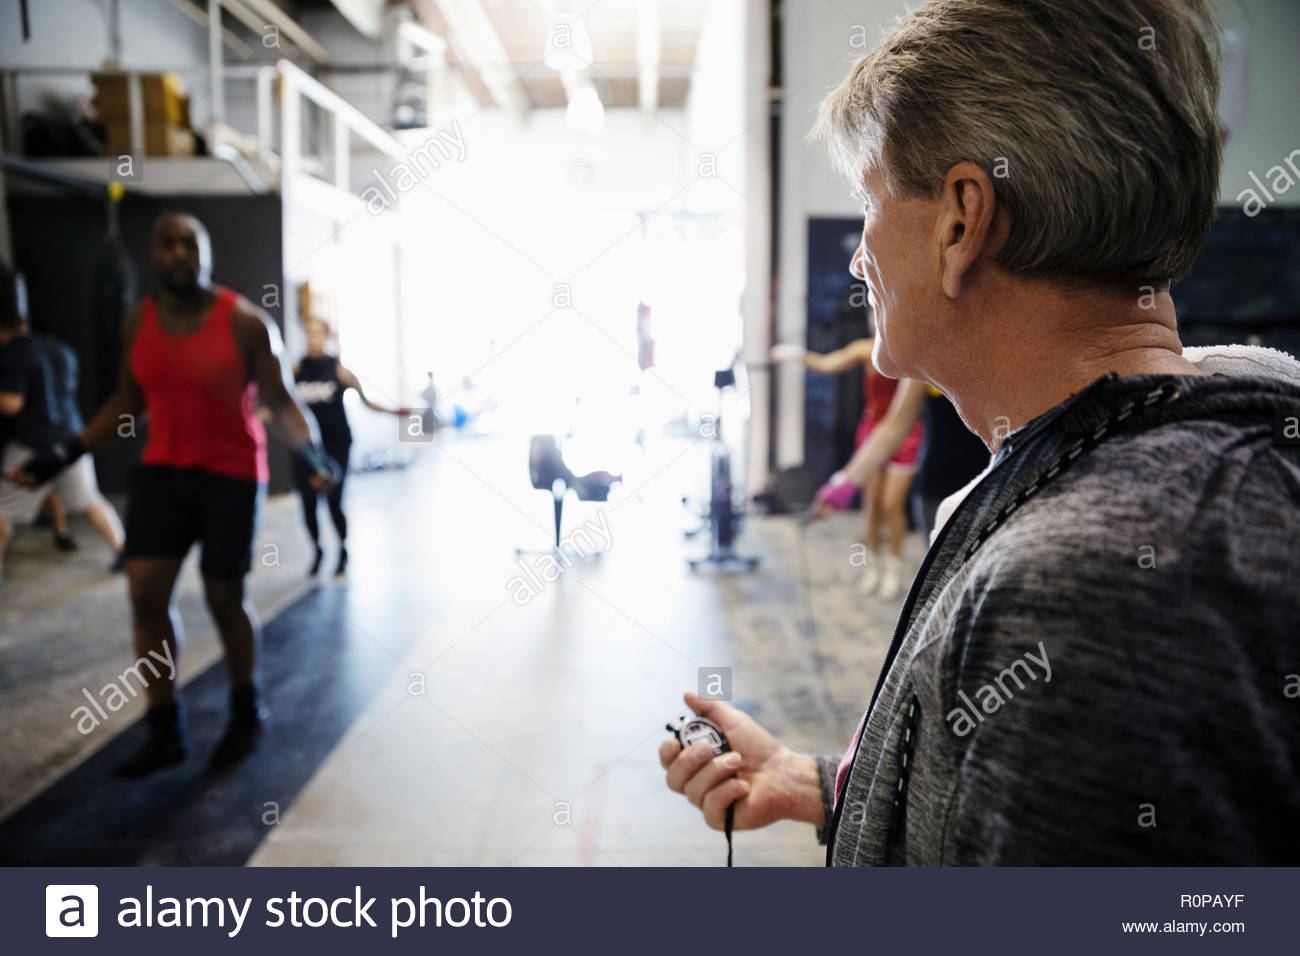 Trainer with stopwatch timing male boxer jump roping in gym - Stock Image